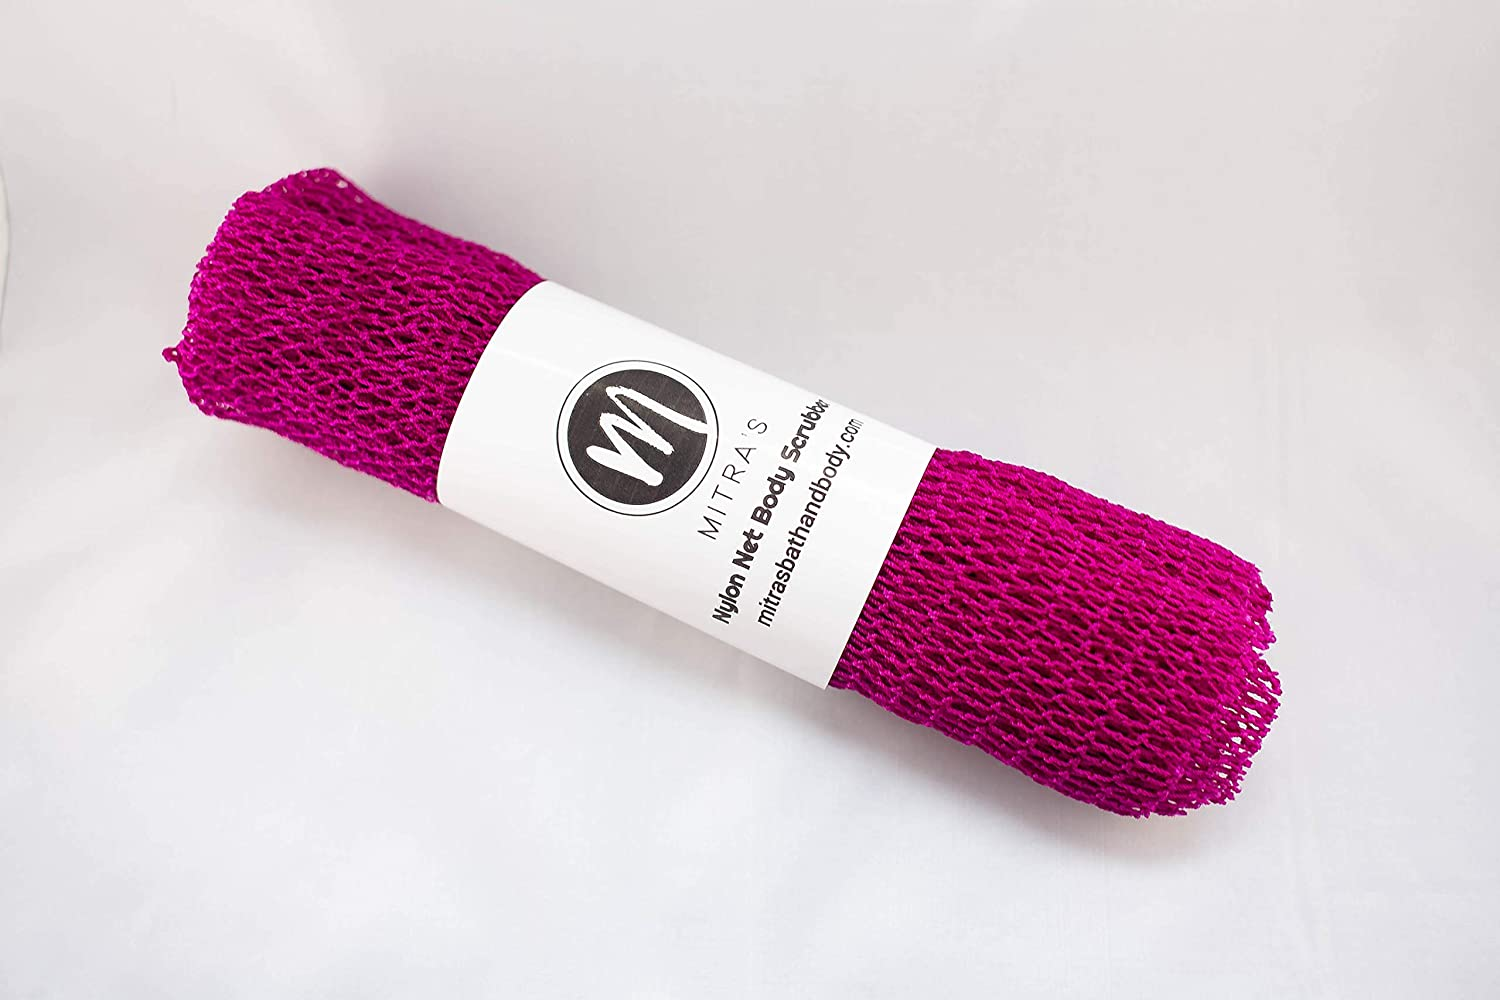 African Net Body Exfoliating Shower Scrubber/Exfoliating Back Scrubber/Skin Smoother/African Net Sponge - Fuschia